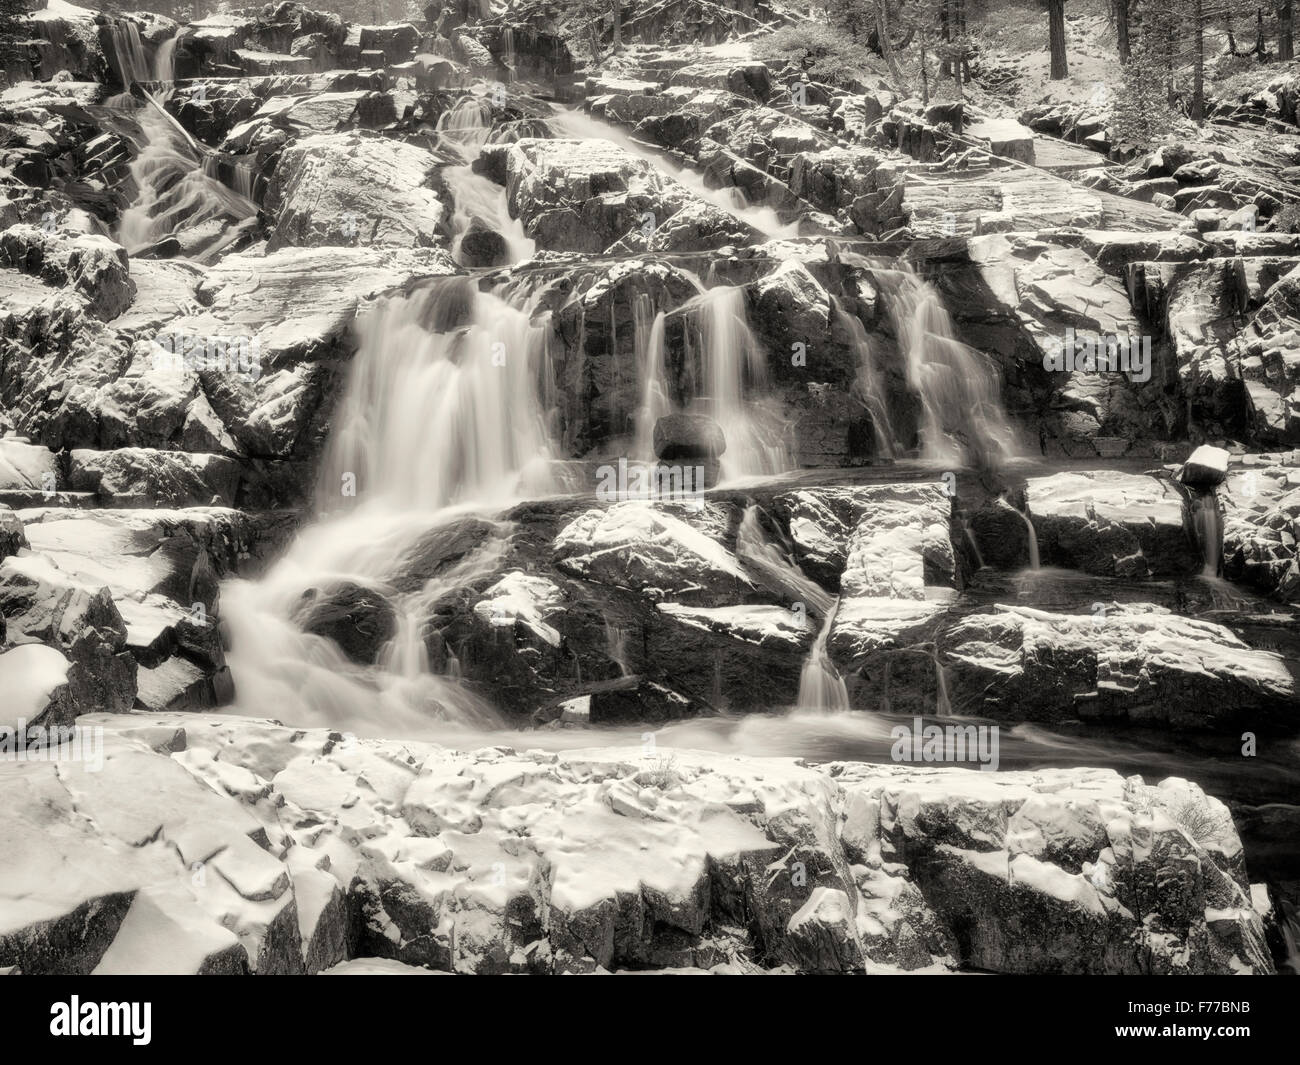 Glen Alpine Falls minutes after fresh snowfall. Lake Tahoe, California - Stock Image